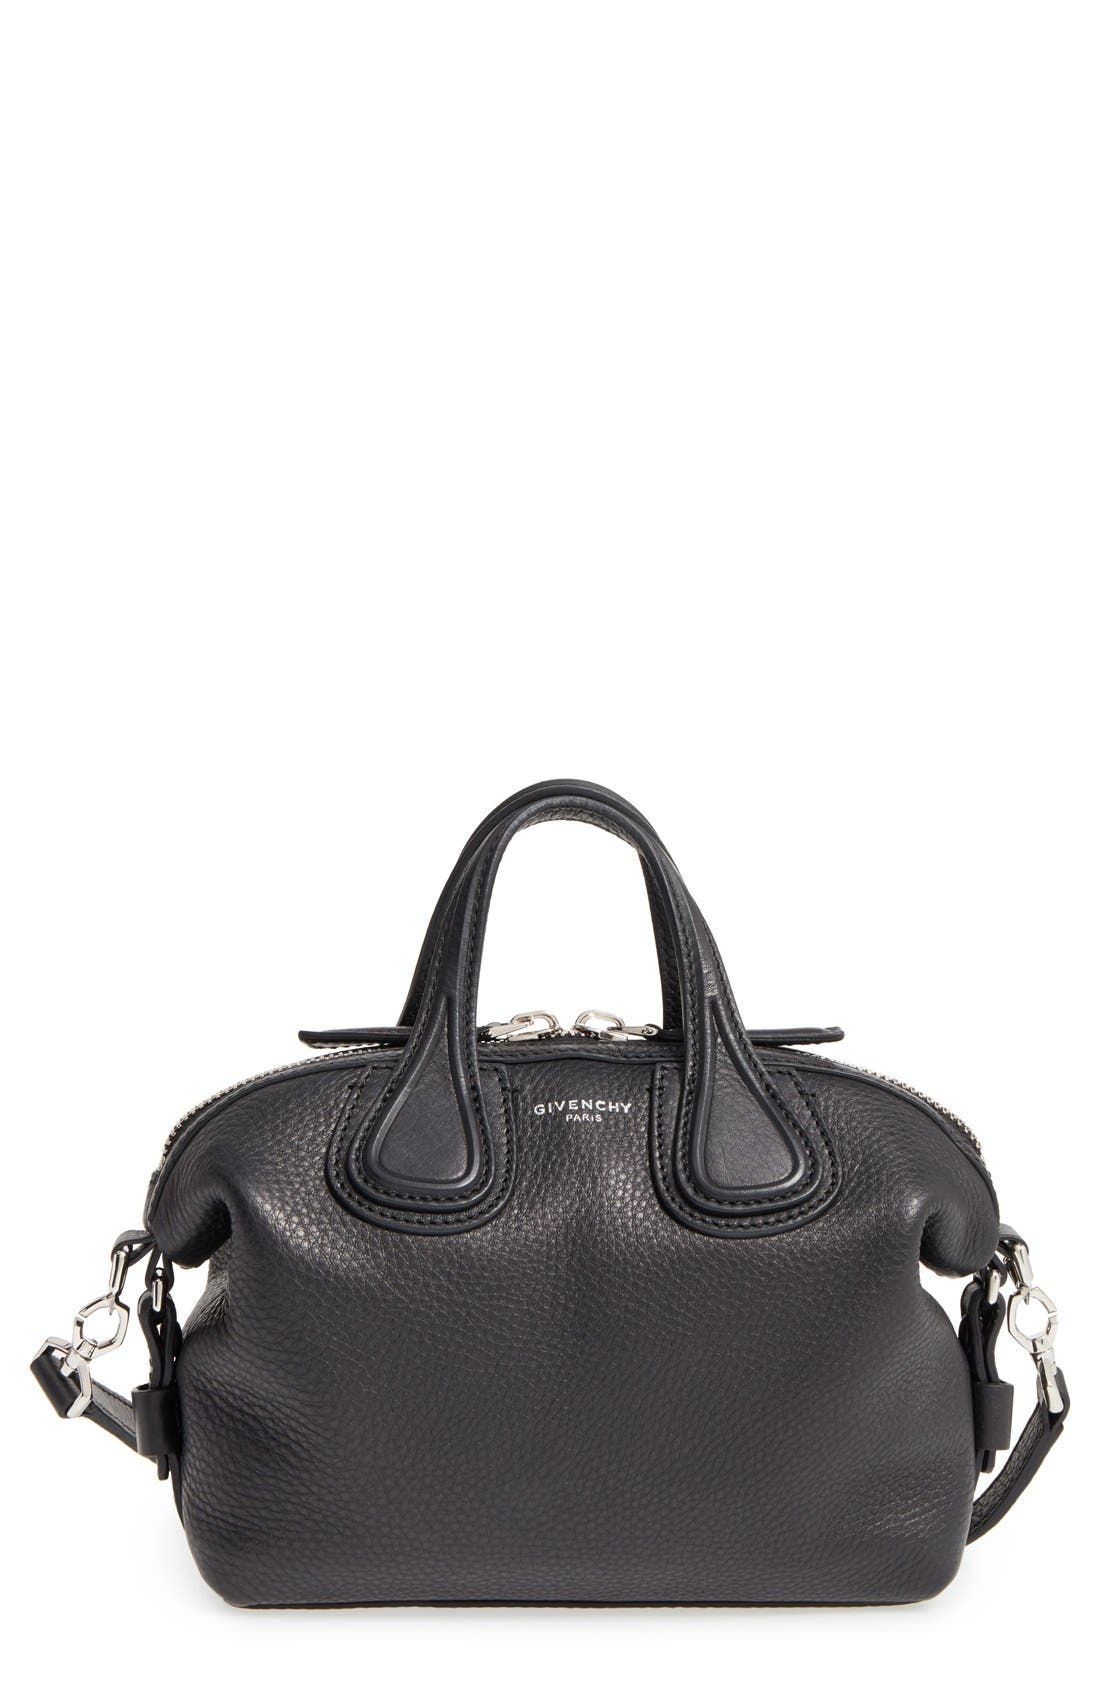 GIVENCHY Micro Nightingale Leather Satchel, Main, color, 001